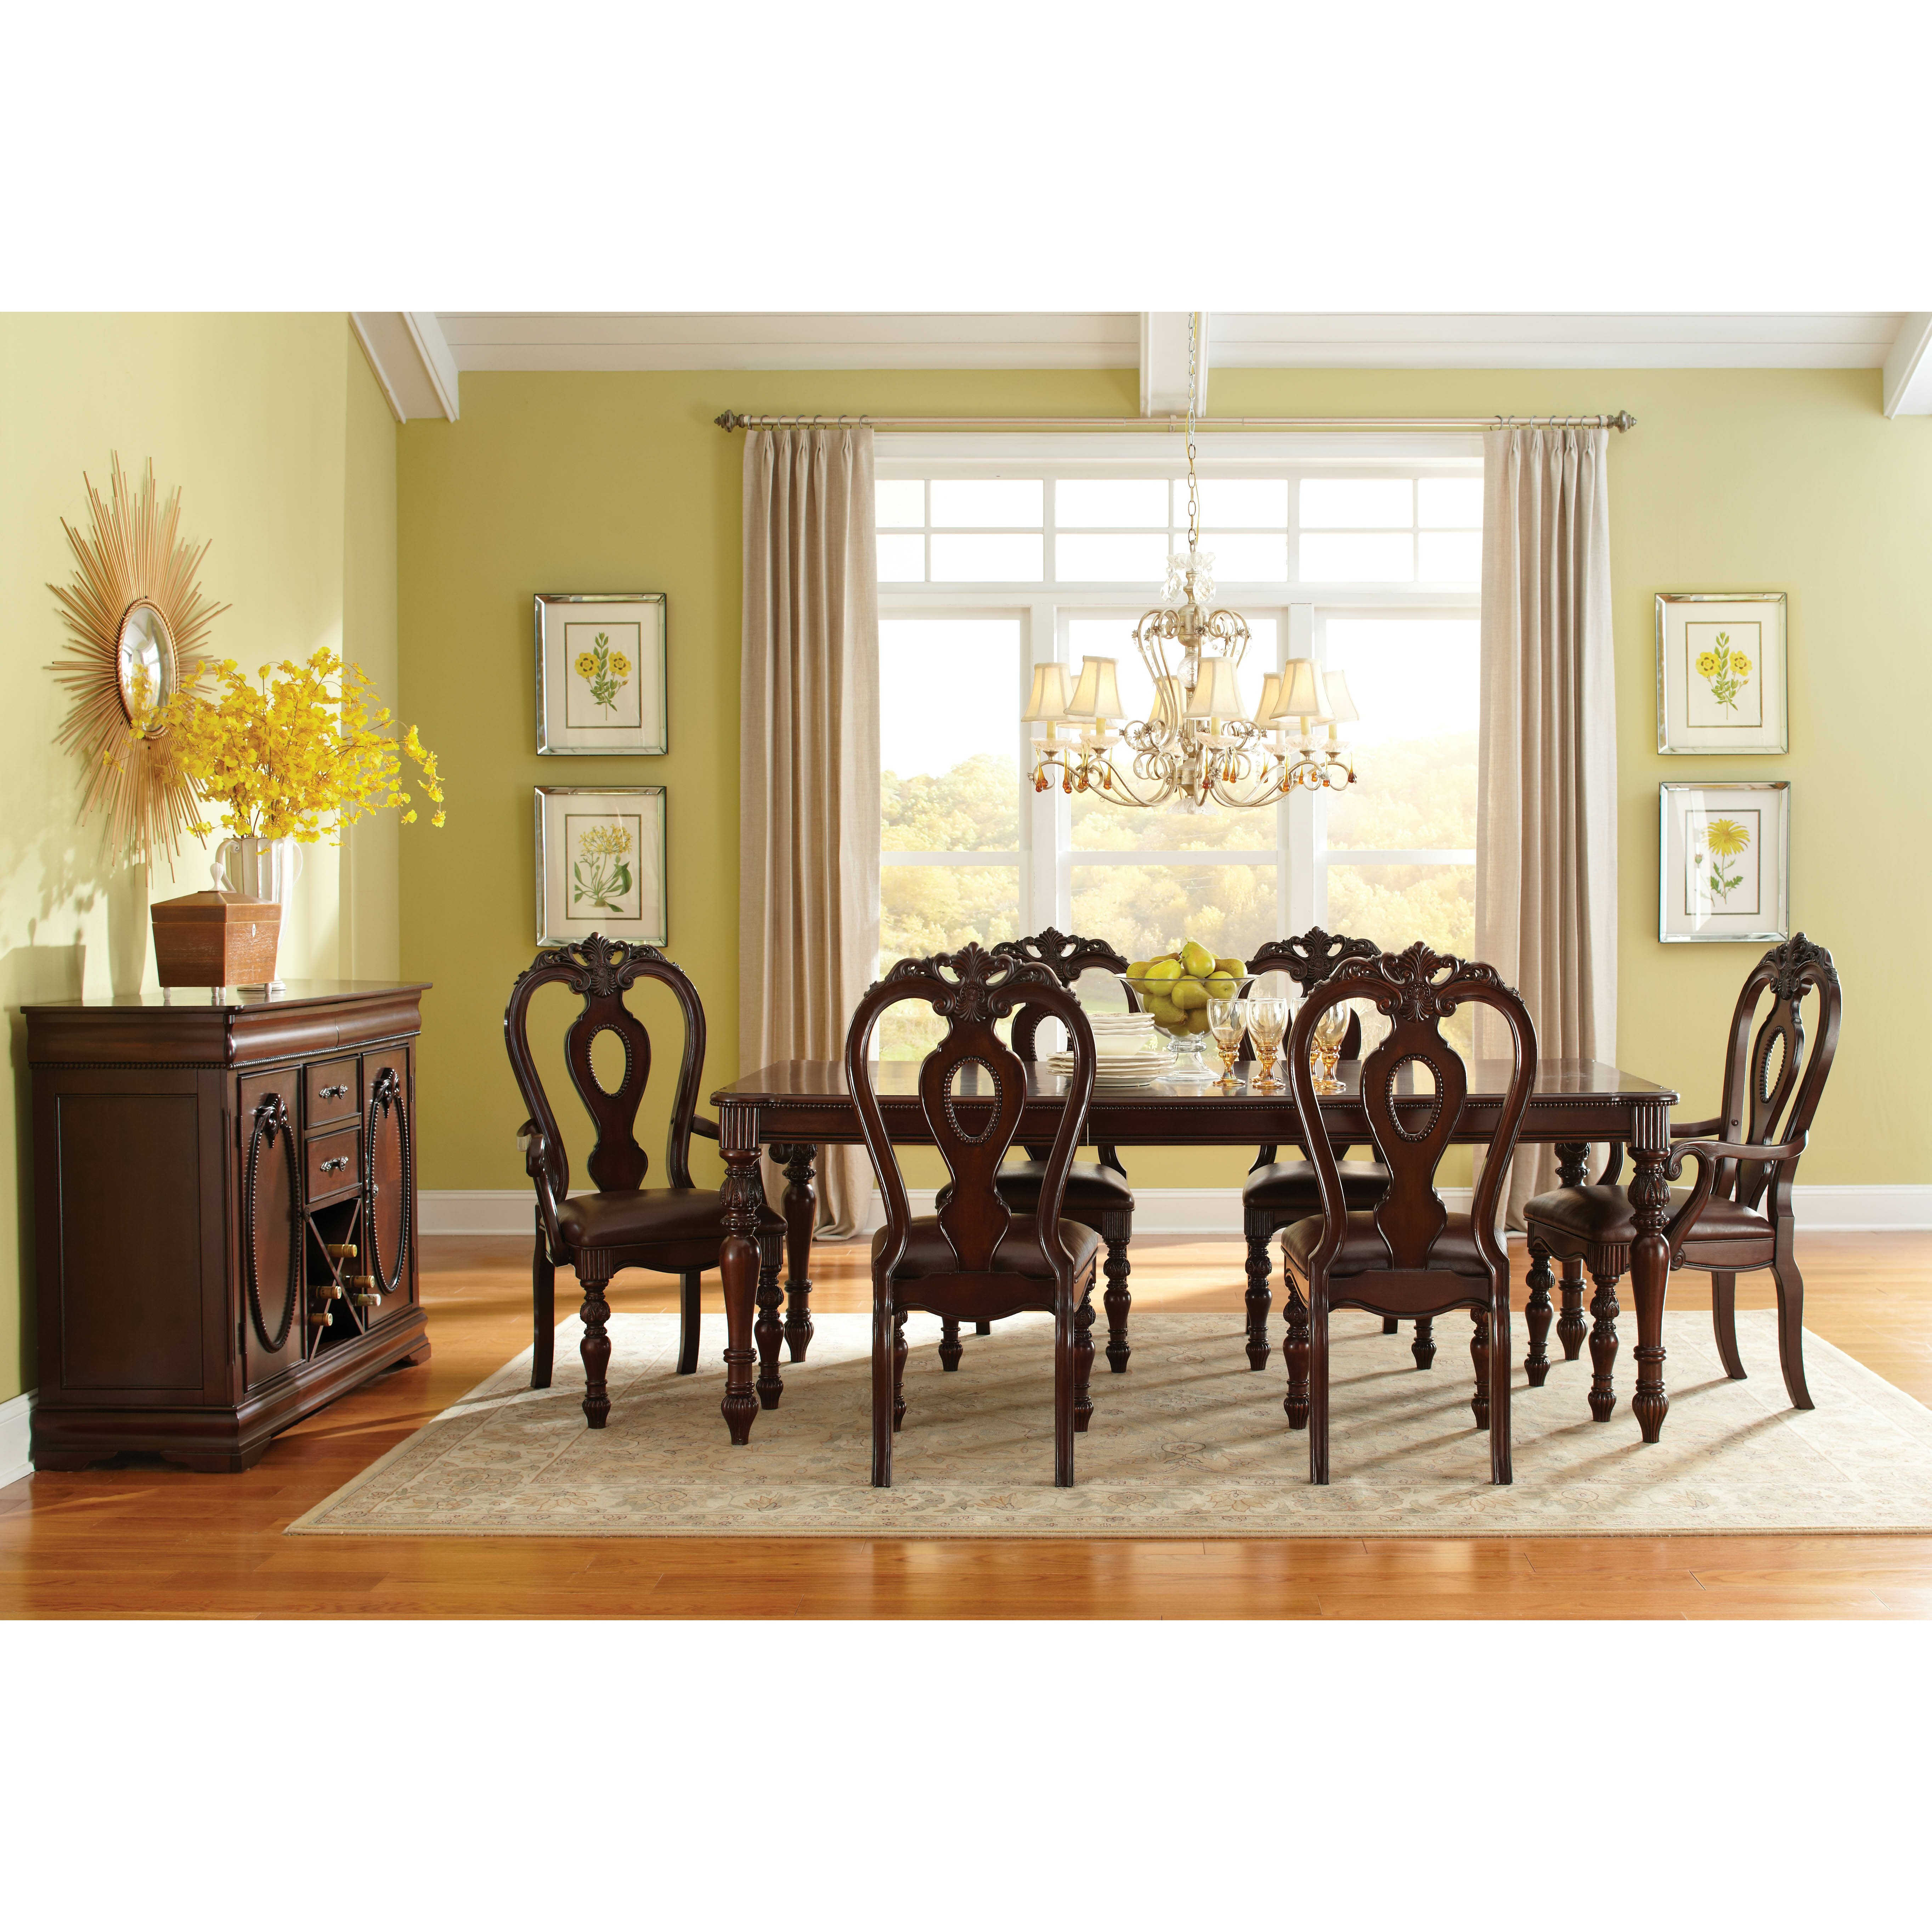 standard furniture westchester side chair - Side Chairs For Living Room